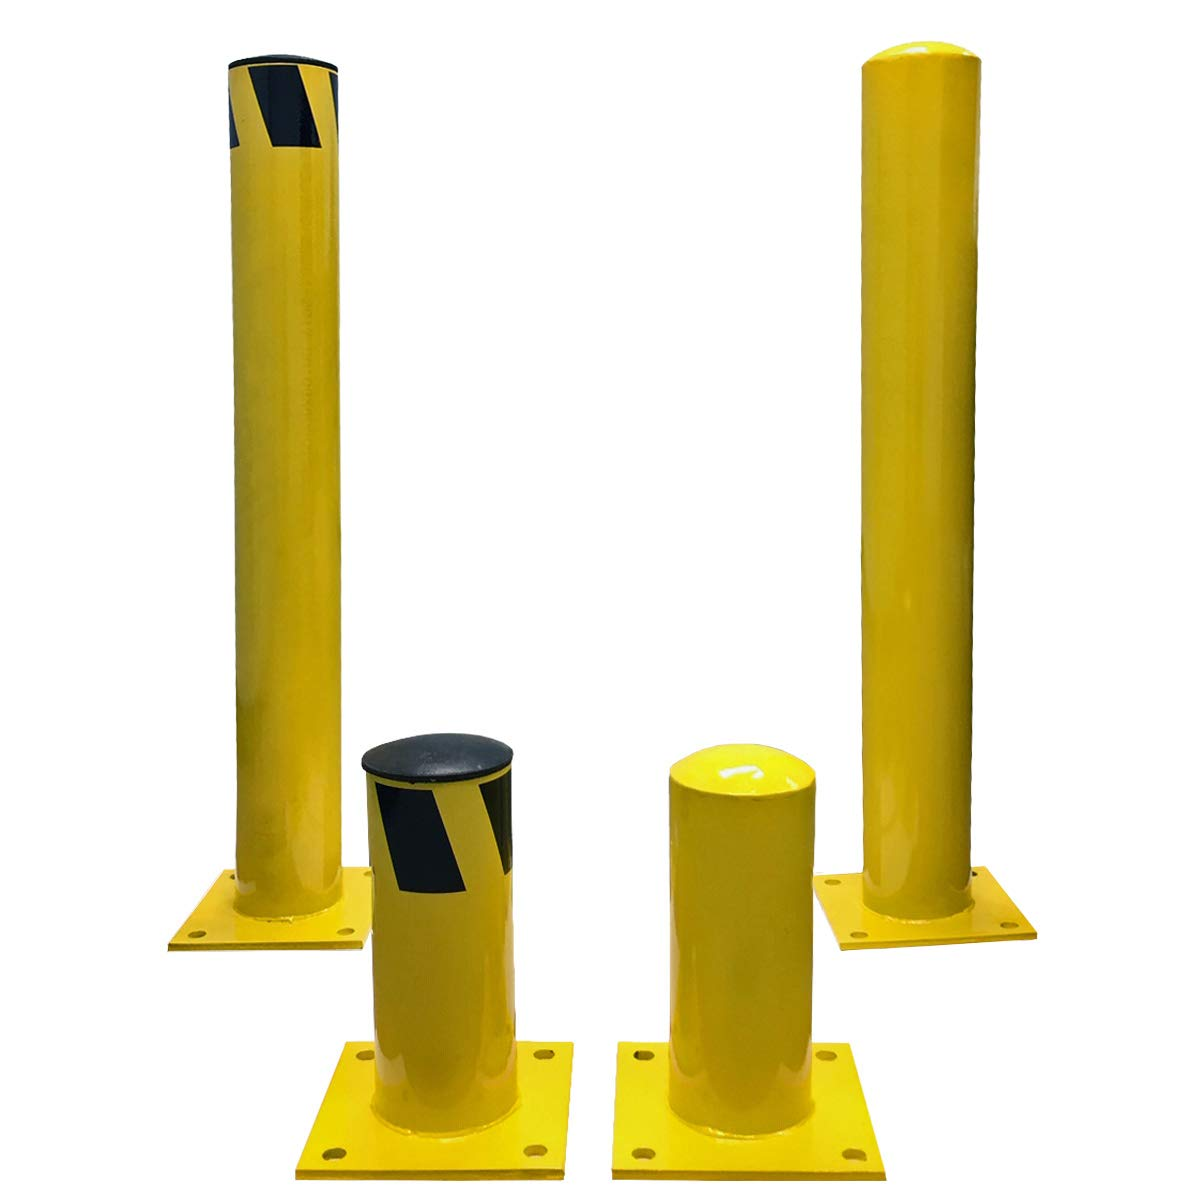 Electriduct 3 Feet Steel Pipe Safety Bollard Post Yellow - Parking Lot Traffic Barrier (36'' Height - 4.5'' OD) - Pack of 2 by Electriduct (Image #4)